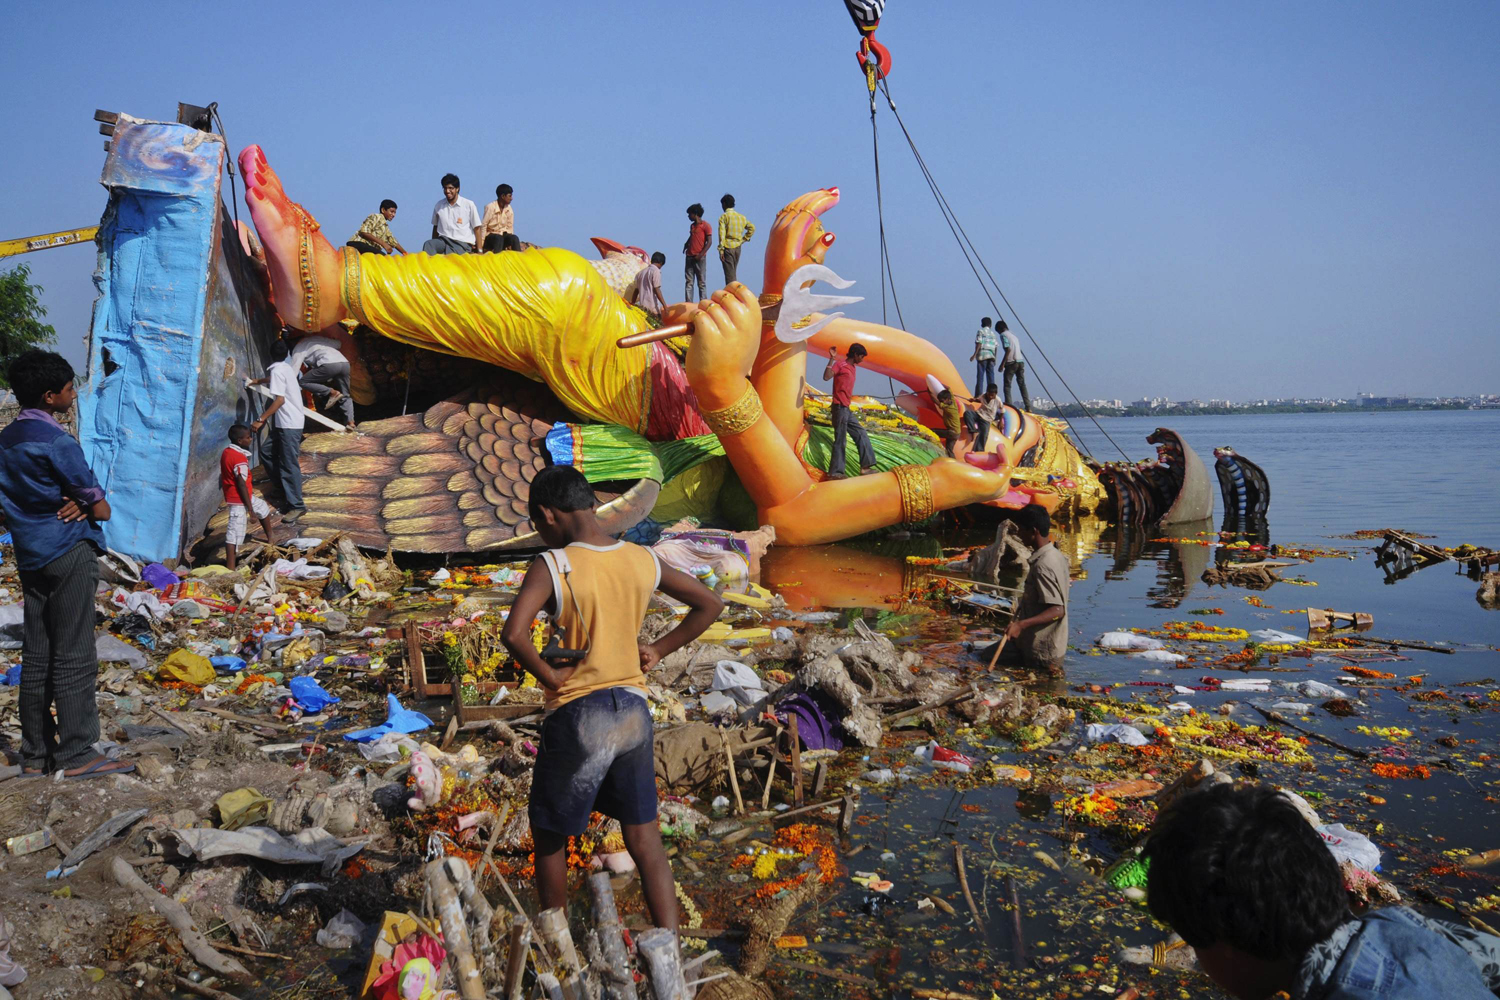 September 12, 2011. Boys climb atop the Hindu elephant god Ganesh, the deity of prosperity, after it was immersed in the waters of Tank Bund Lake to mark the end of Ganesh Chaturthi festival in the southern Indian city of Hyderabad. Ganesh Chaturthi is a ten-day long Hindu religious festival which ends with the immersion of the idols that are taken through the streets in processions, accompanied by dancing and singing, to water tanks, lakes, rivers or seas. The immersion not only symbolizes a ritual send-off to the deity on his journey to his heavenly abode but also carrying away of the misfortunes of mankind.